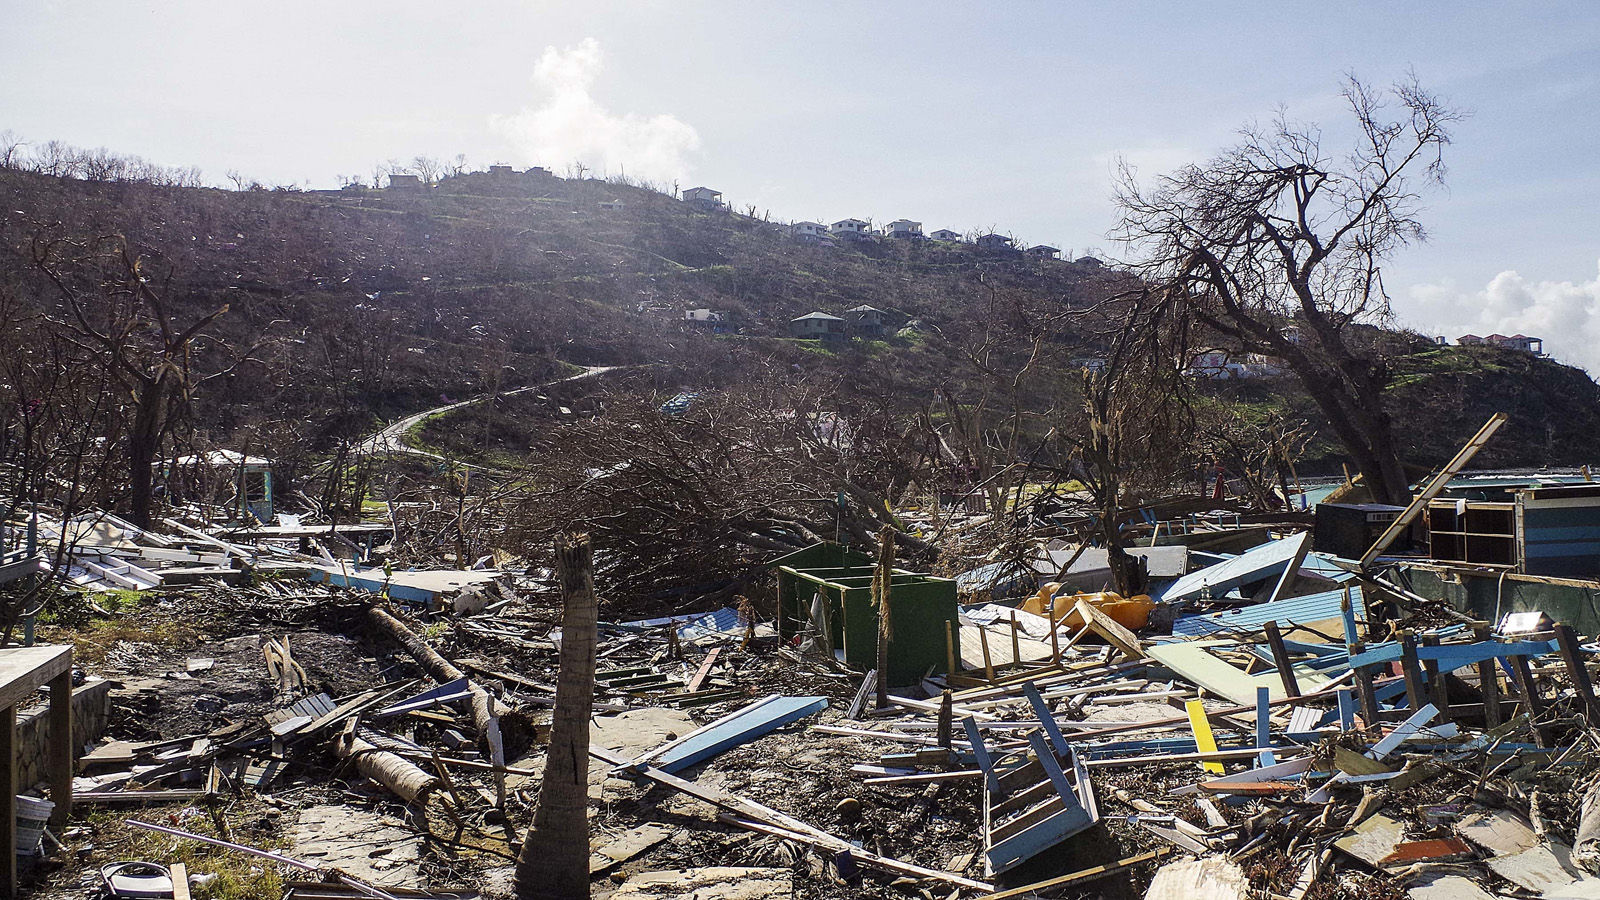 This photo provided by the Royal Navy and taken on Sunday, Sept. 24, 2017 shows the devastation left by Hurricane Irma in Great Harbour, British Virgin Islands. Irma, once the most powerful hurricane ever recorded in the open Atlantic, wreaked havoc in parts of the Caribbean — Antigua and Barbuda, Anguilla and St. Martin, the U.S. and British Virgin Islands, Turks and Caicos, the Bahamas and parts of Cuba — leaving more than three dozen people dead and turning vacation island paradises into devastated landscapes. (Dan Lauder/Royal Navy via AP)